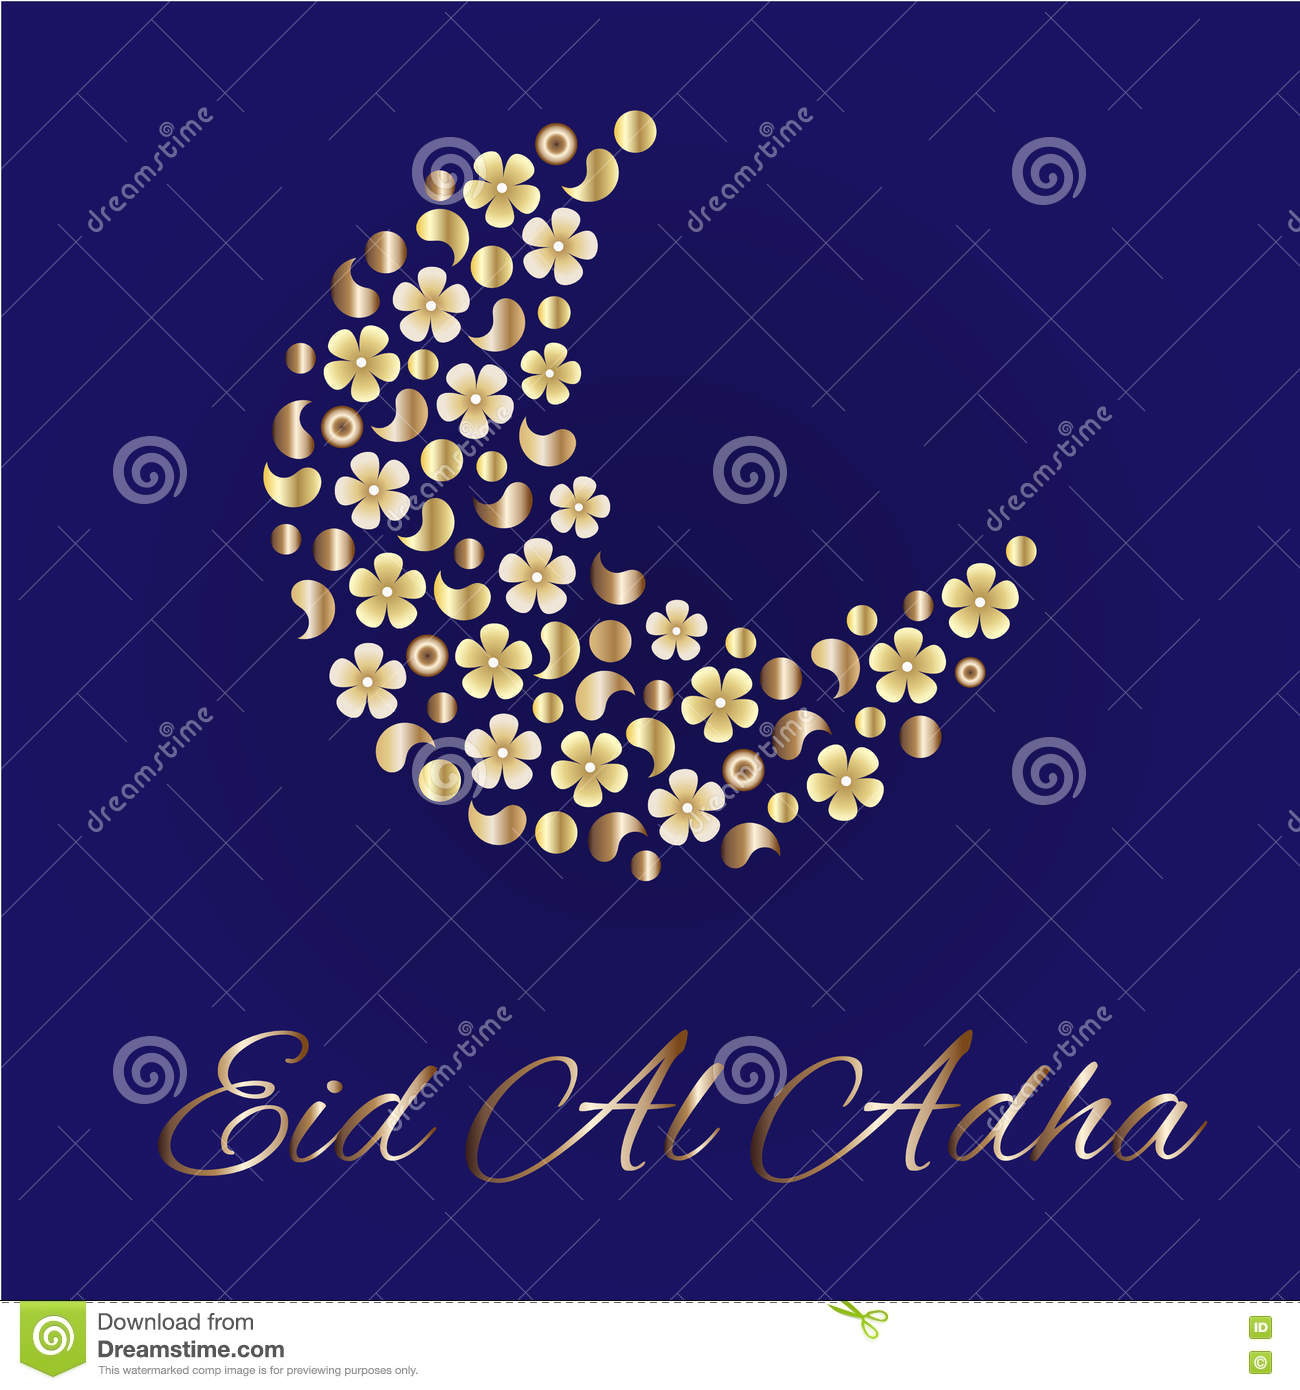 Greeting card for eid al adha stock vector illustration of greeting card for eid al adha kristyandbryce Image collections